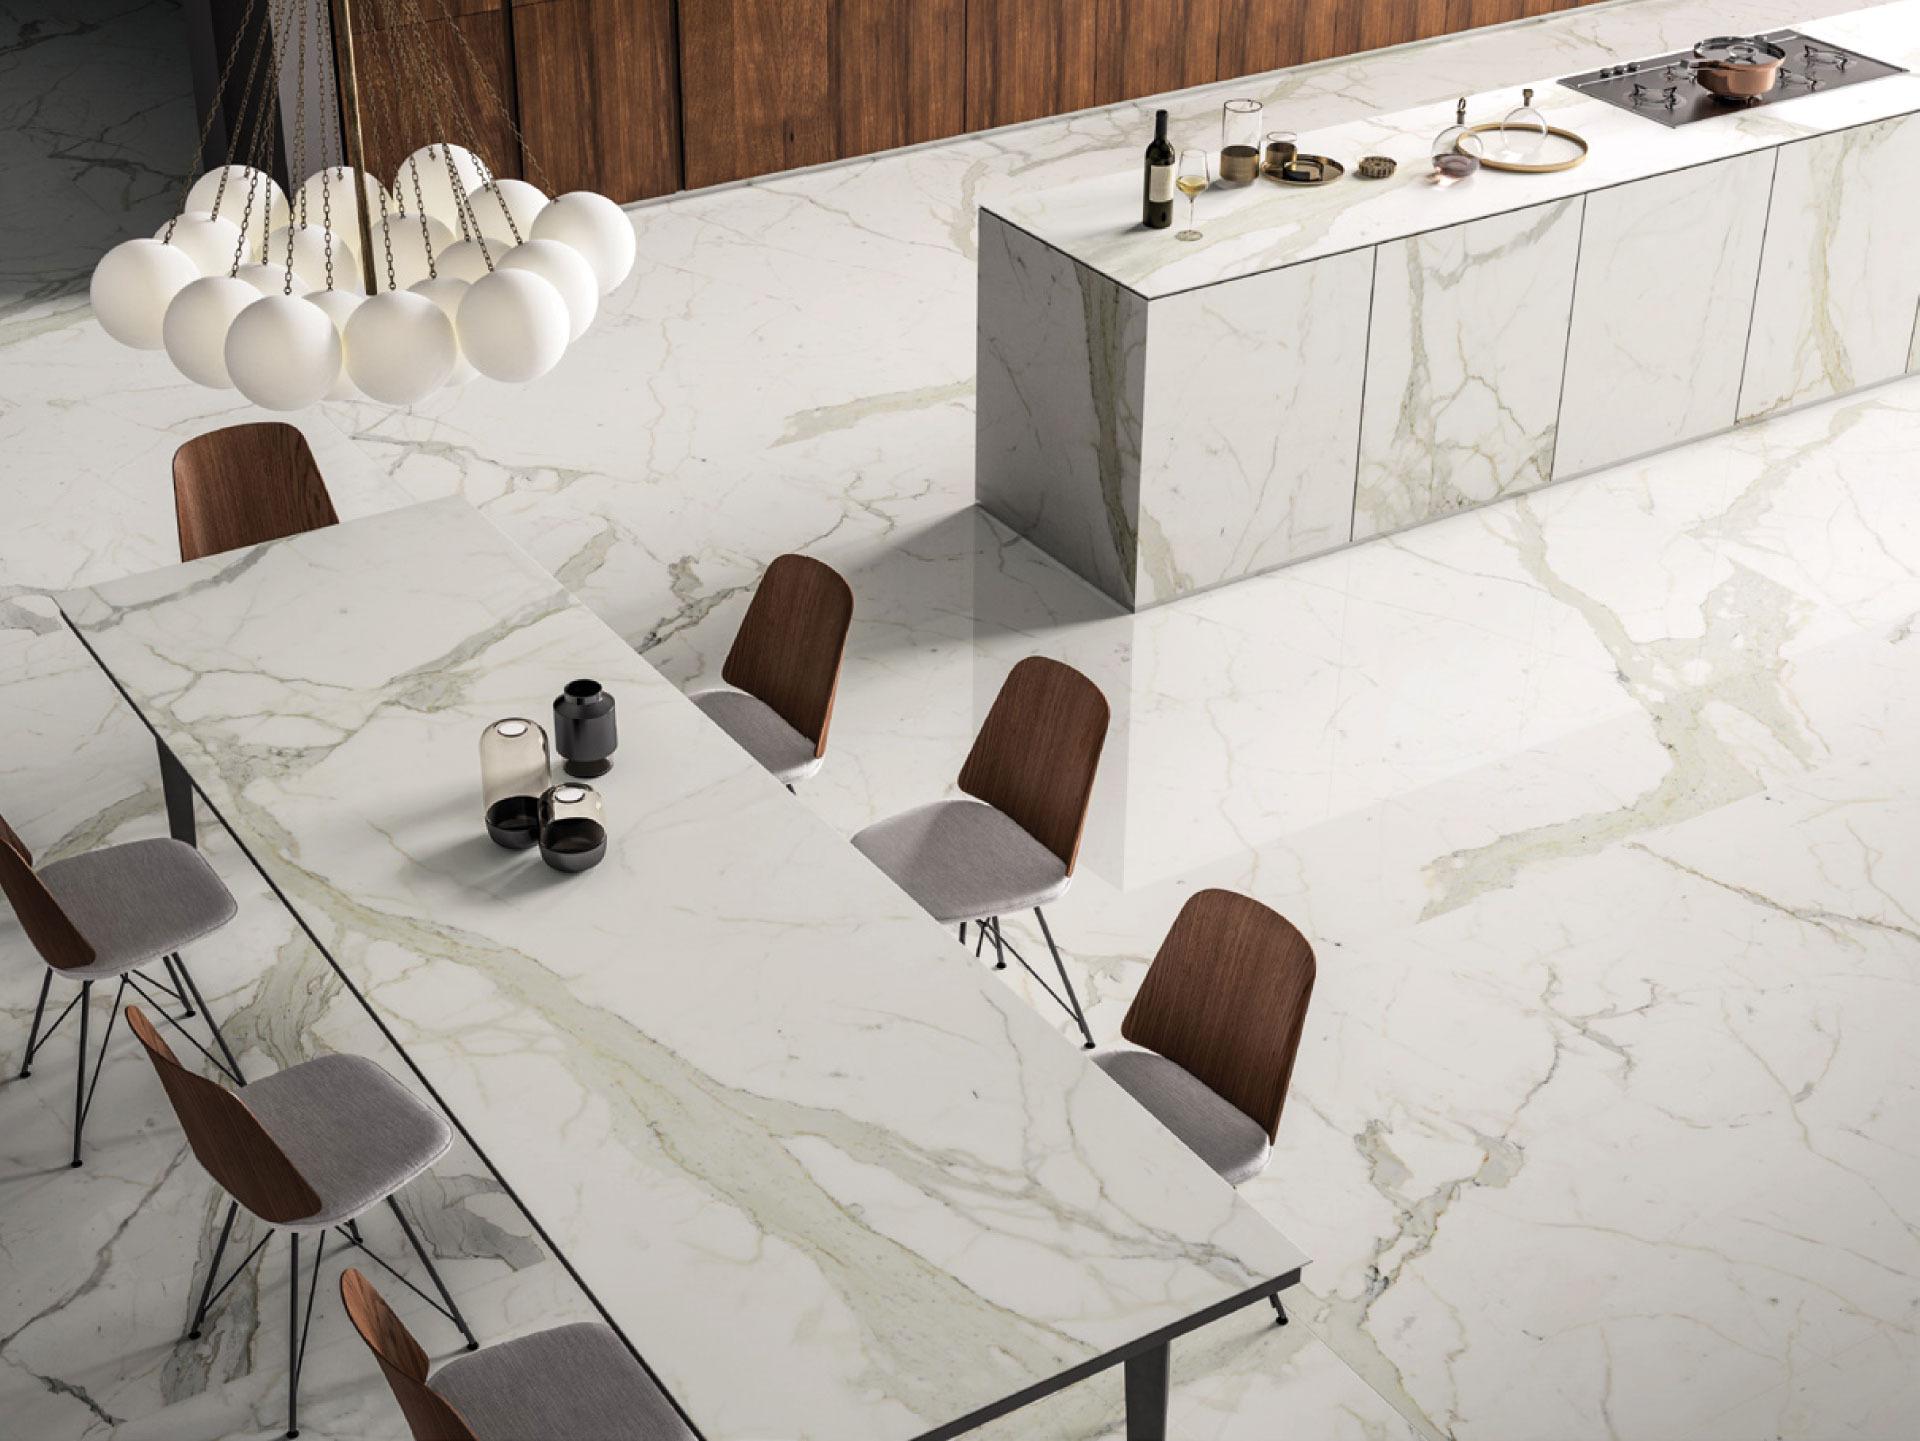 Sapienstone The Best Porcelain Surfaces For The Kitchen